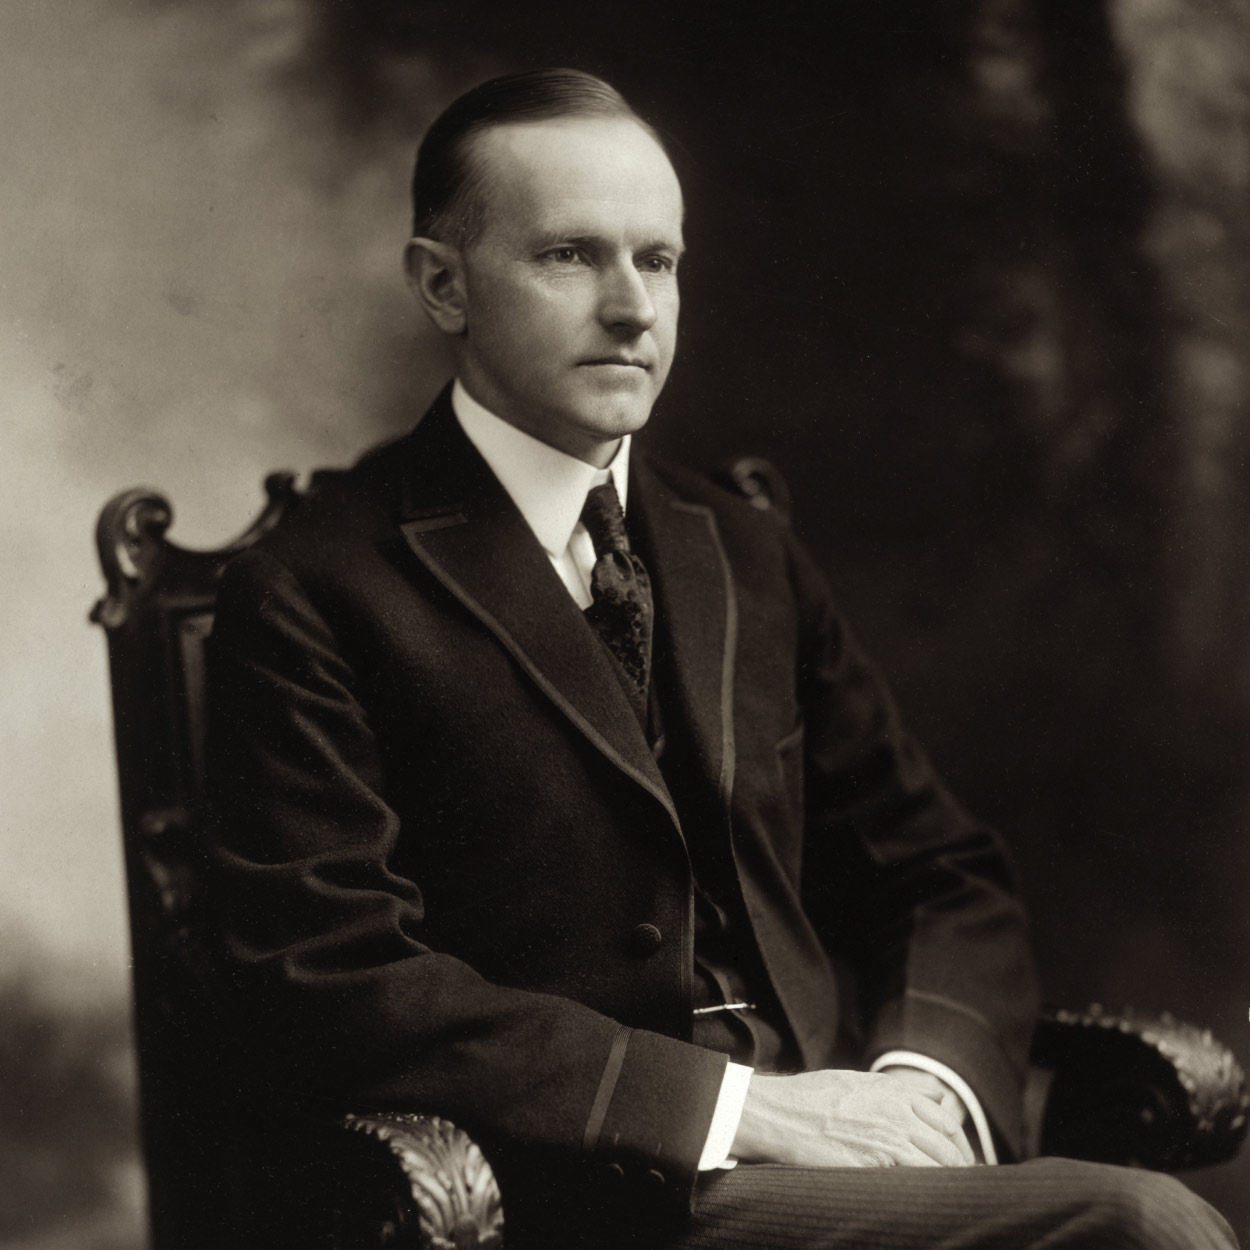 Portrait of Calvin Coolidge, the 30th President of the United States